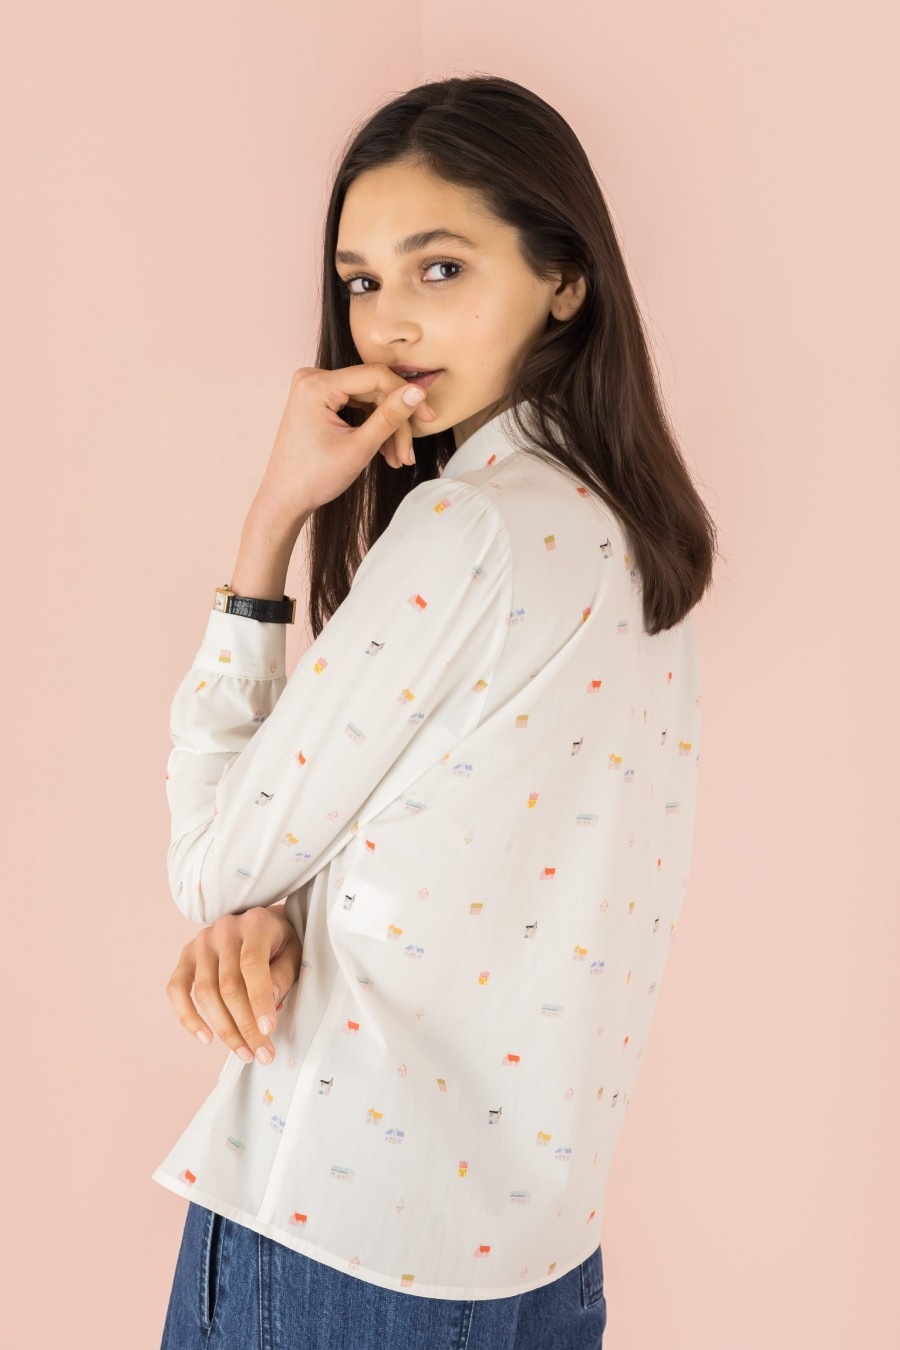 shirt with patterned